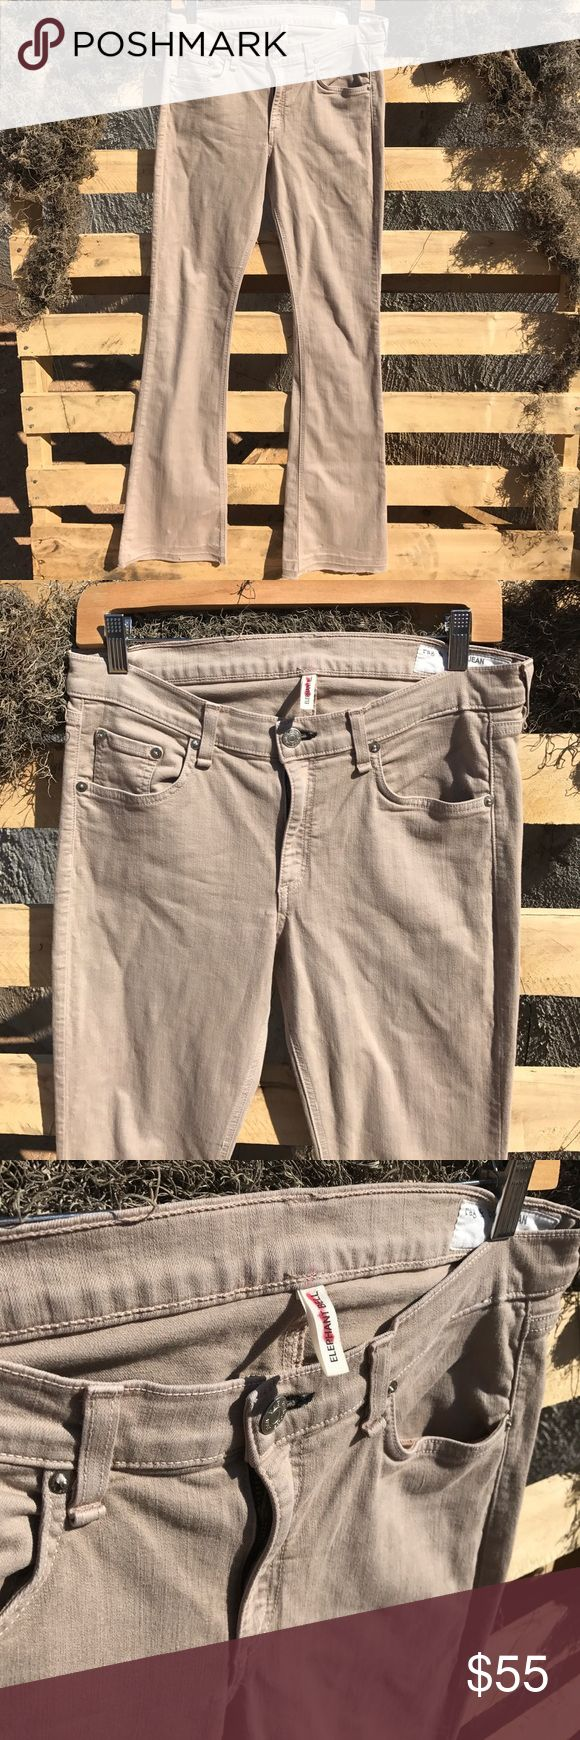 """RAG & BONE """"Elephant Bell"""" Tan jeans Size 30 In great condition! Awesome raw hem. Low rise. 86% cotton, 11% polyester, 3% spandex. Waist: 15"""" Inseam: 35"""" rag & bone Jeans Flare & Wide Leg"""